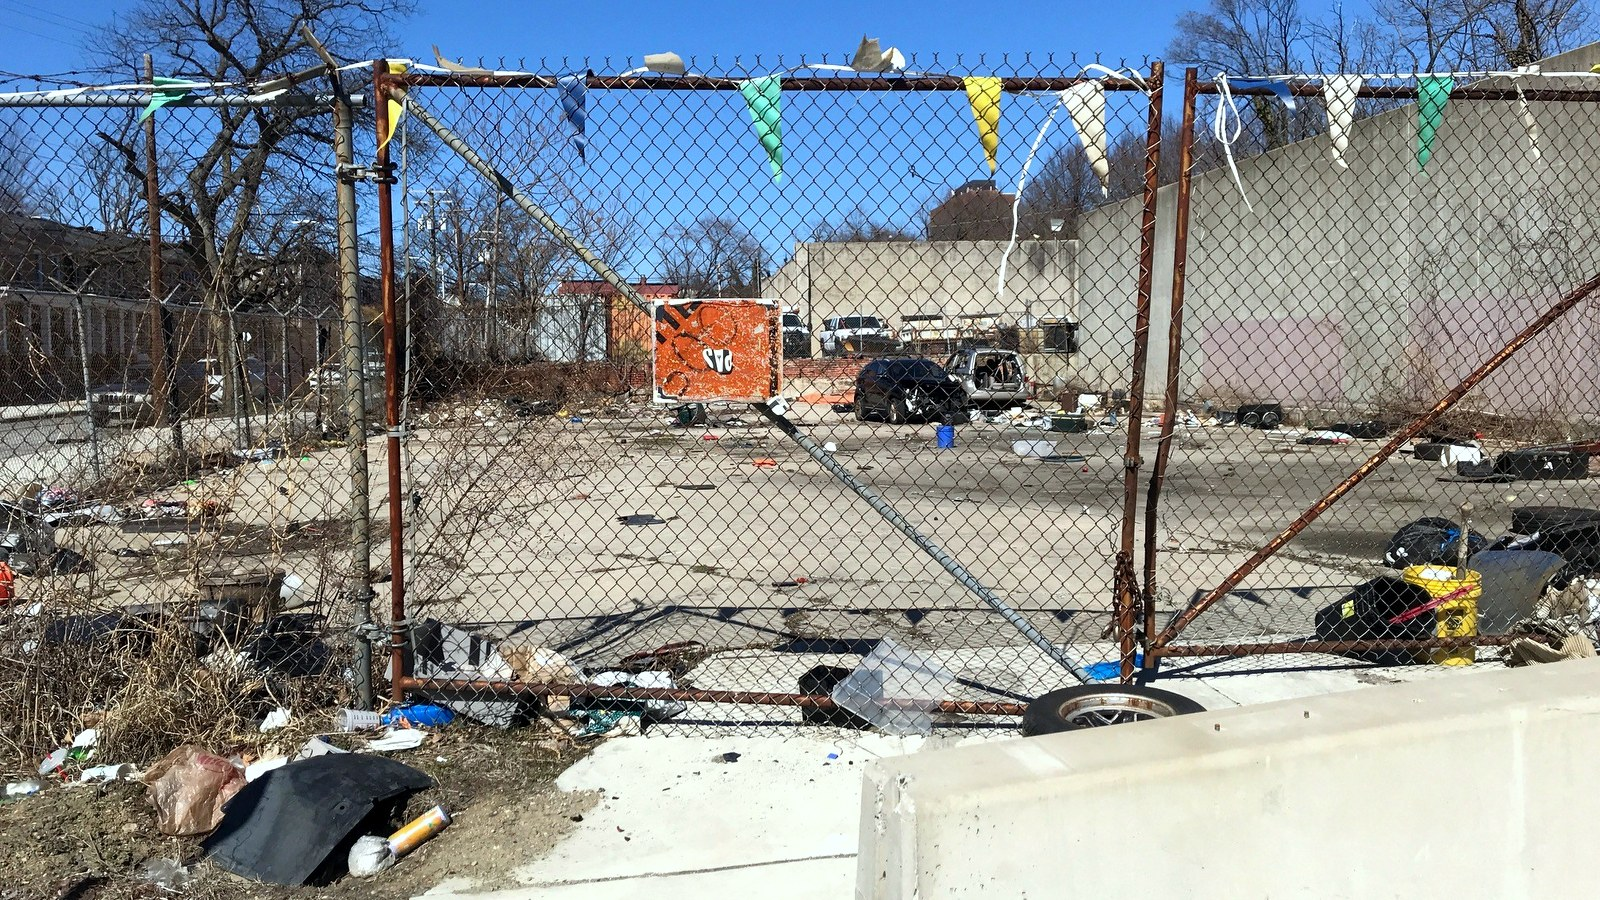 While seeking to increase fines for illegal dumpers, the City Council could examine the sanitary conditions of city-owned properties, such as this former service garage lot at 1601-57 Braddish Avenue in West Baltimore. (Mark Reutter)